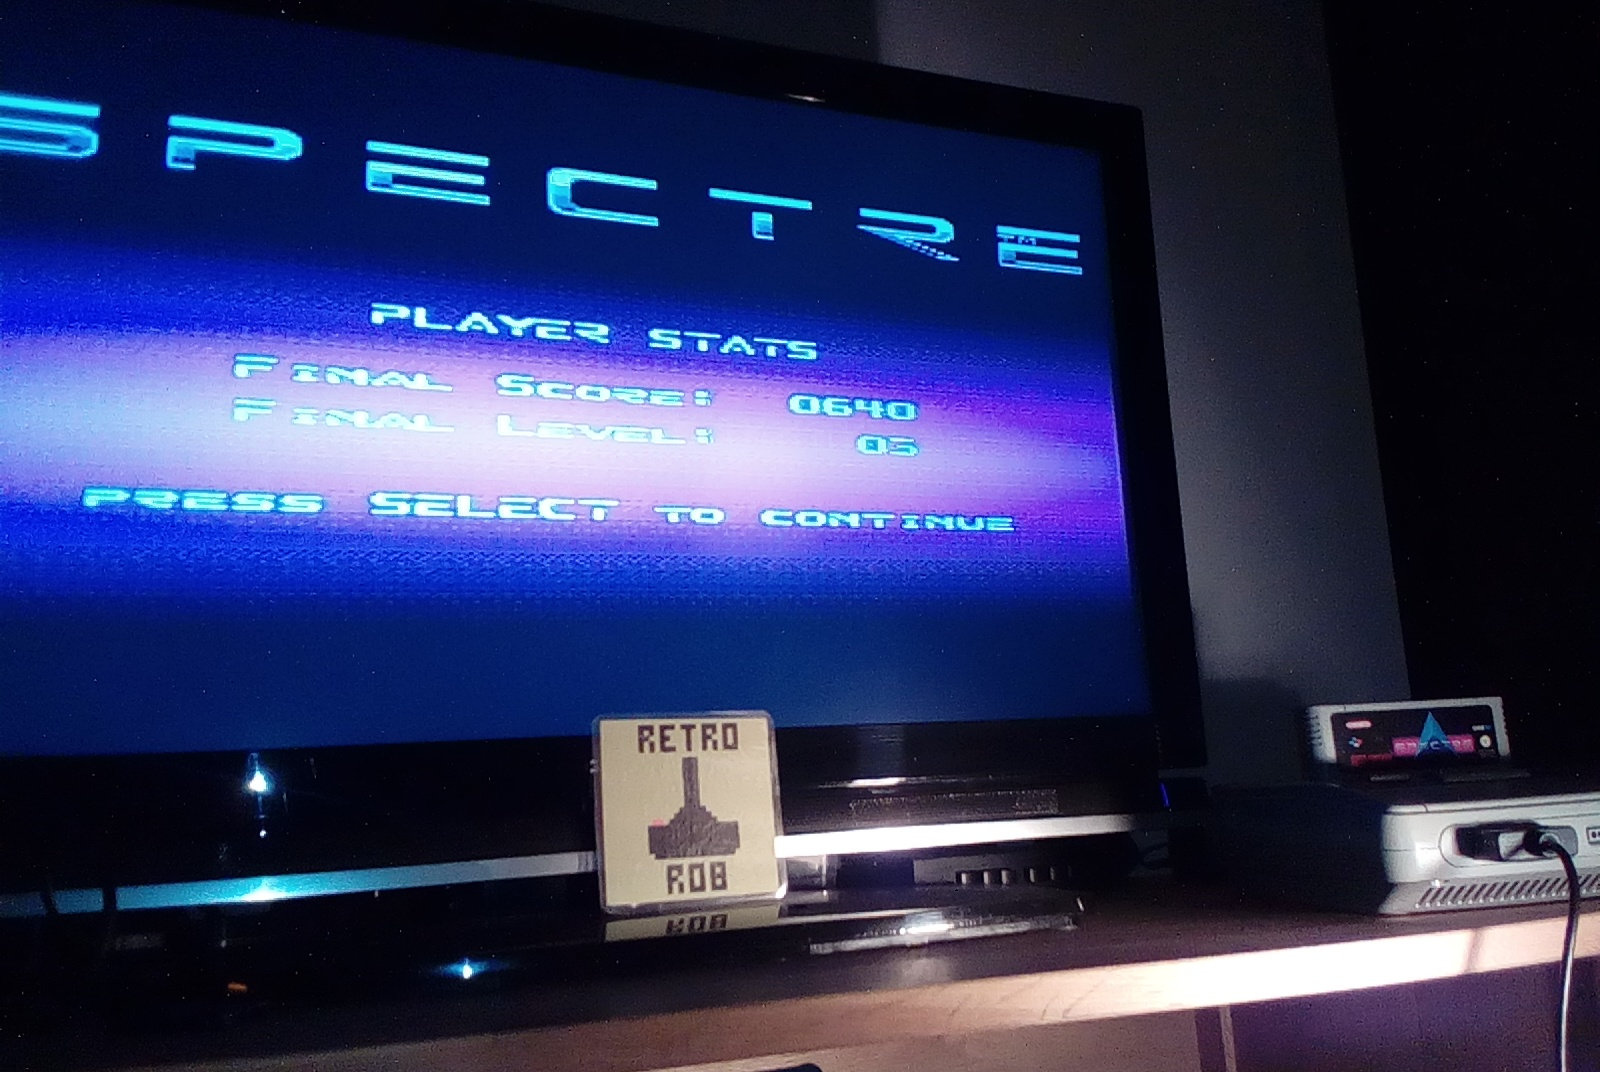 RetroRob: Spectre (SNES/Super Famicom) 640 points on 2019-12-22 14:08:54